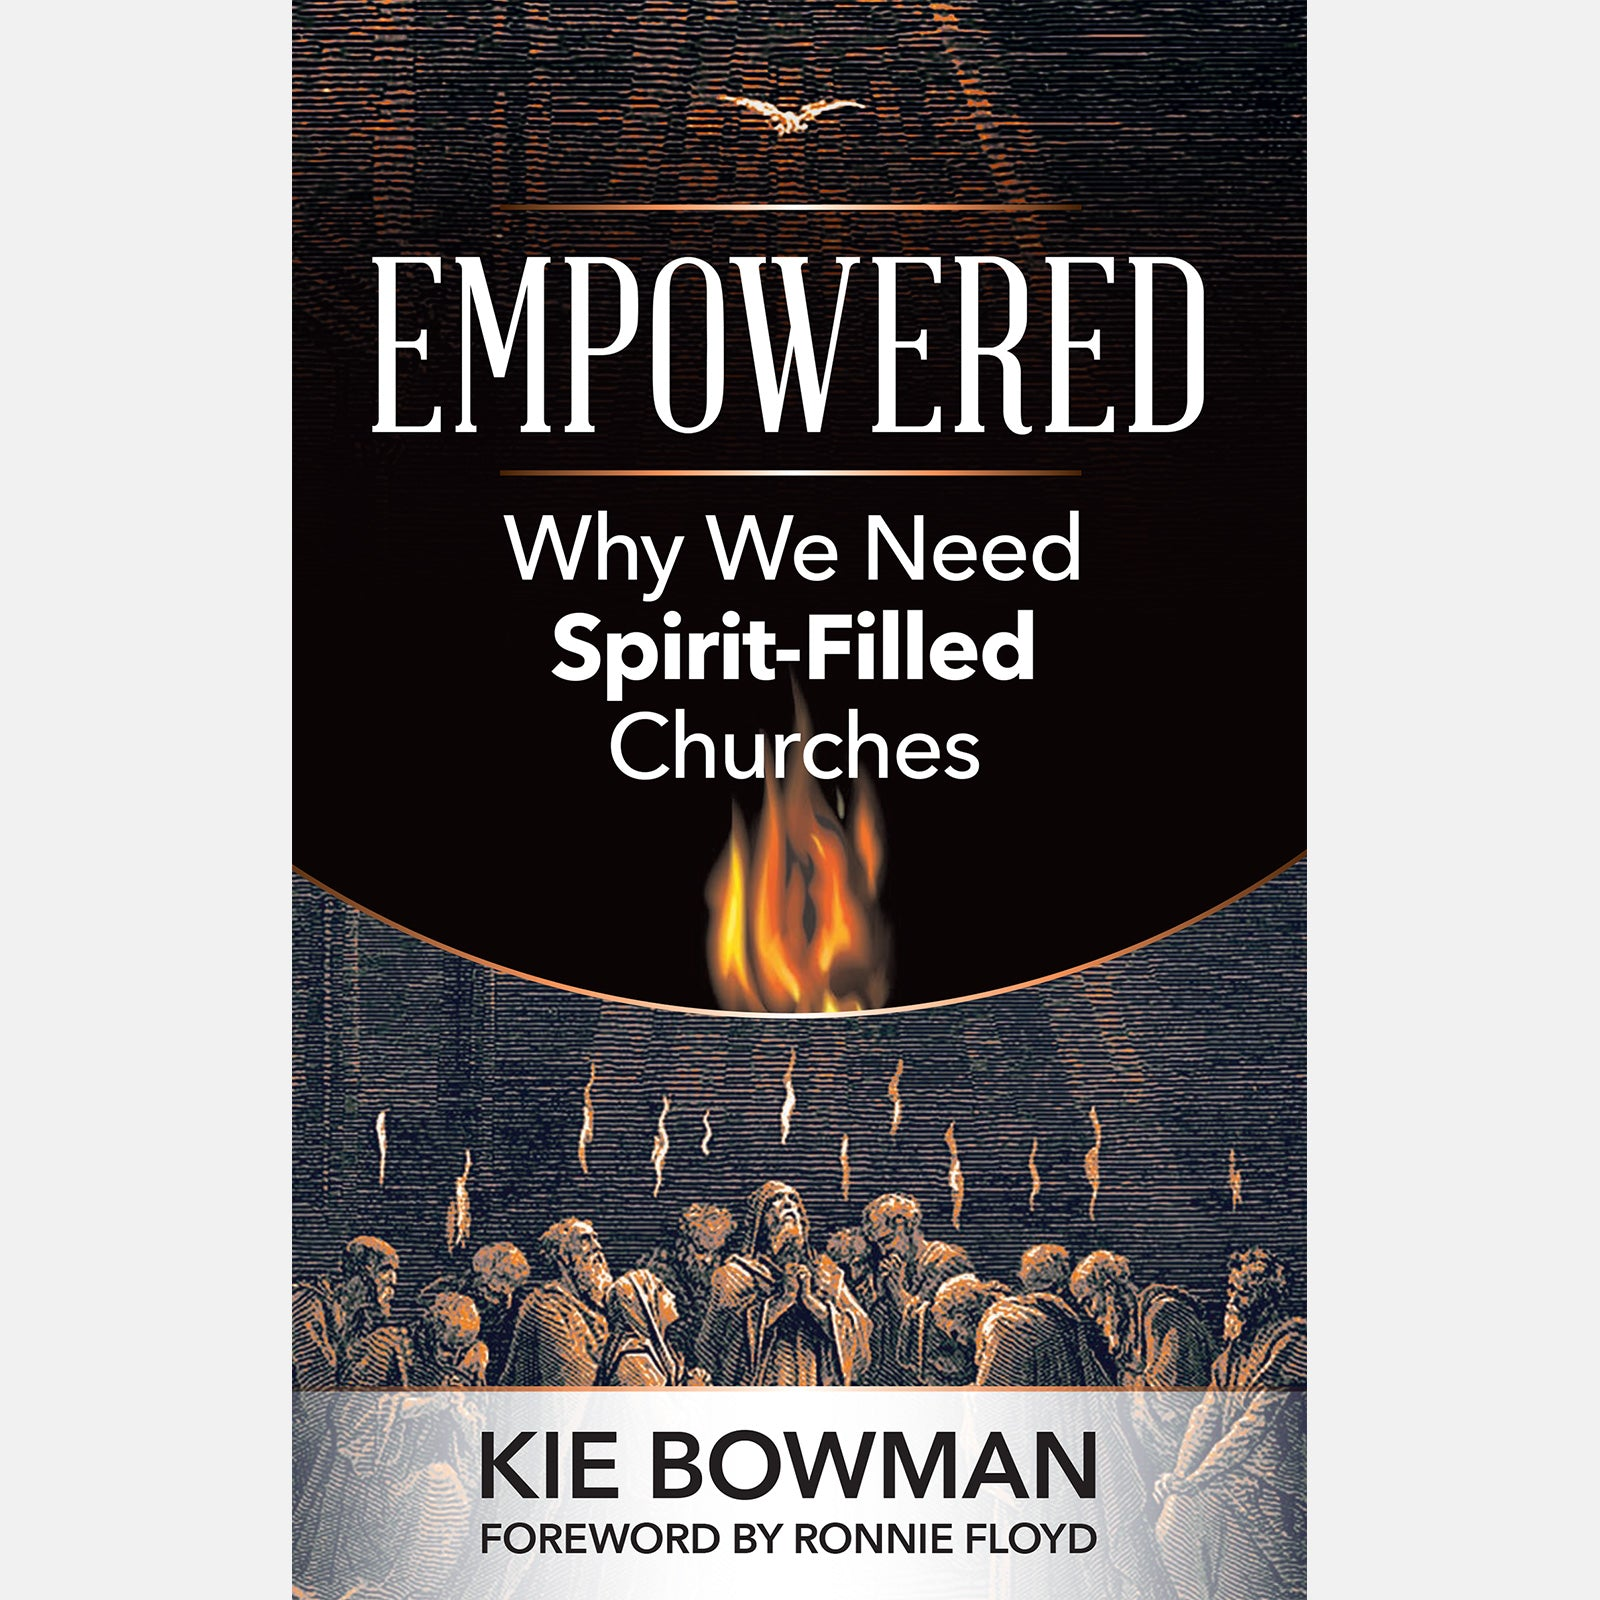 Empowered: Why We Need Spirit-Filled Churches - Case of 24